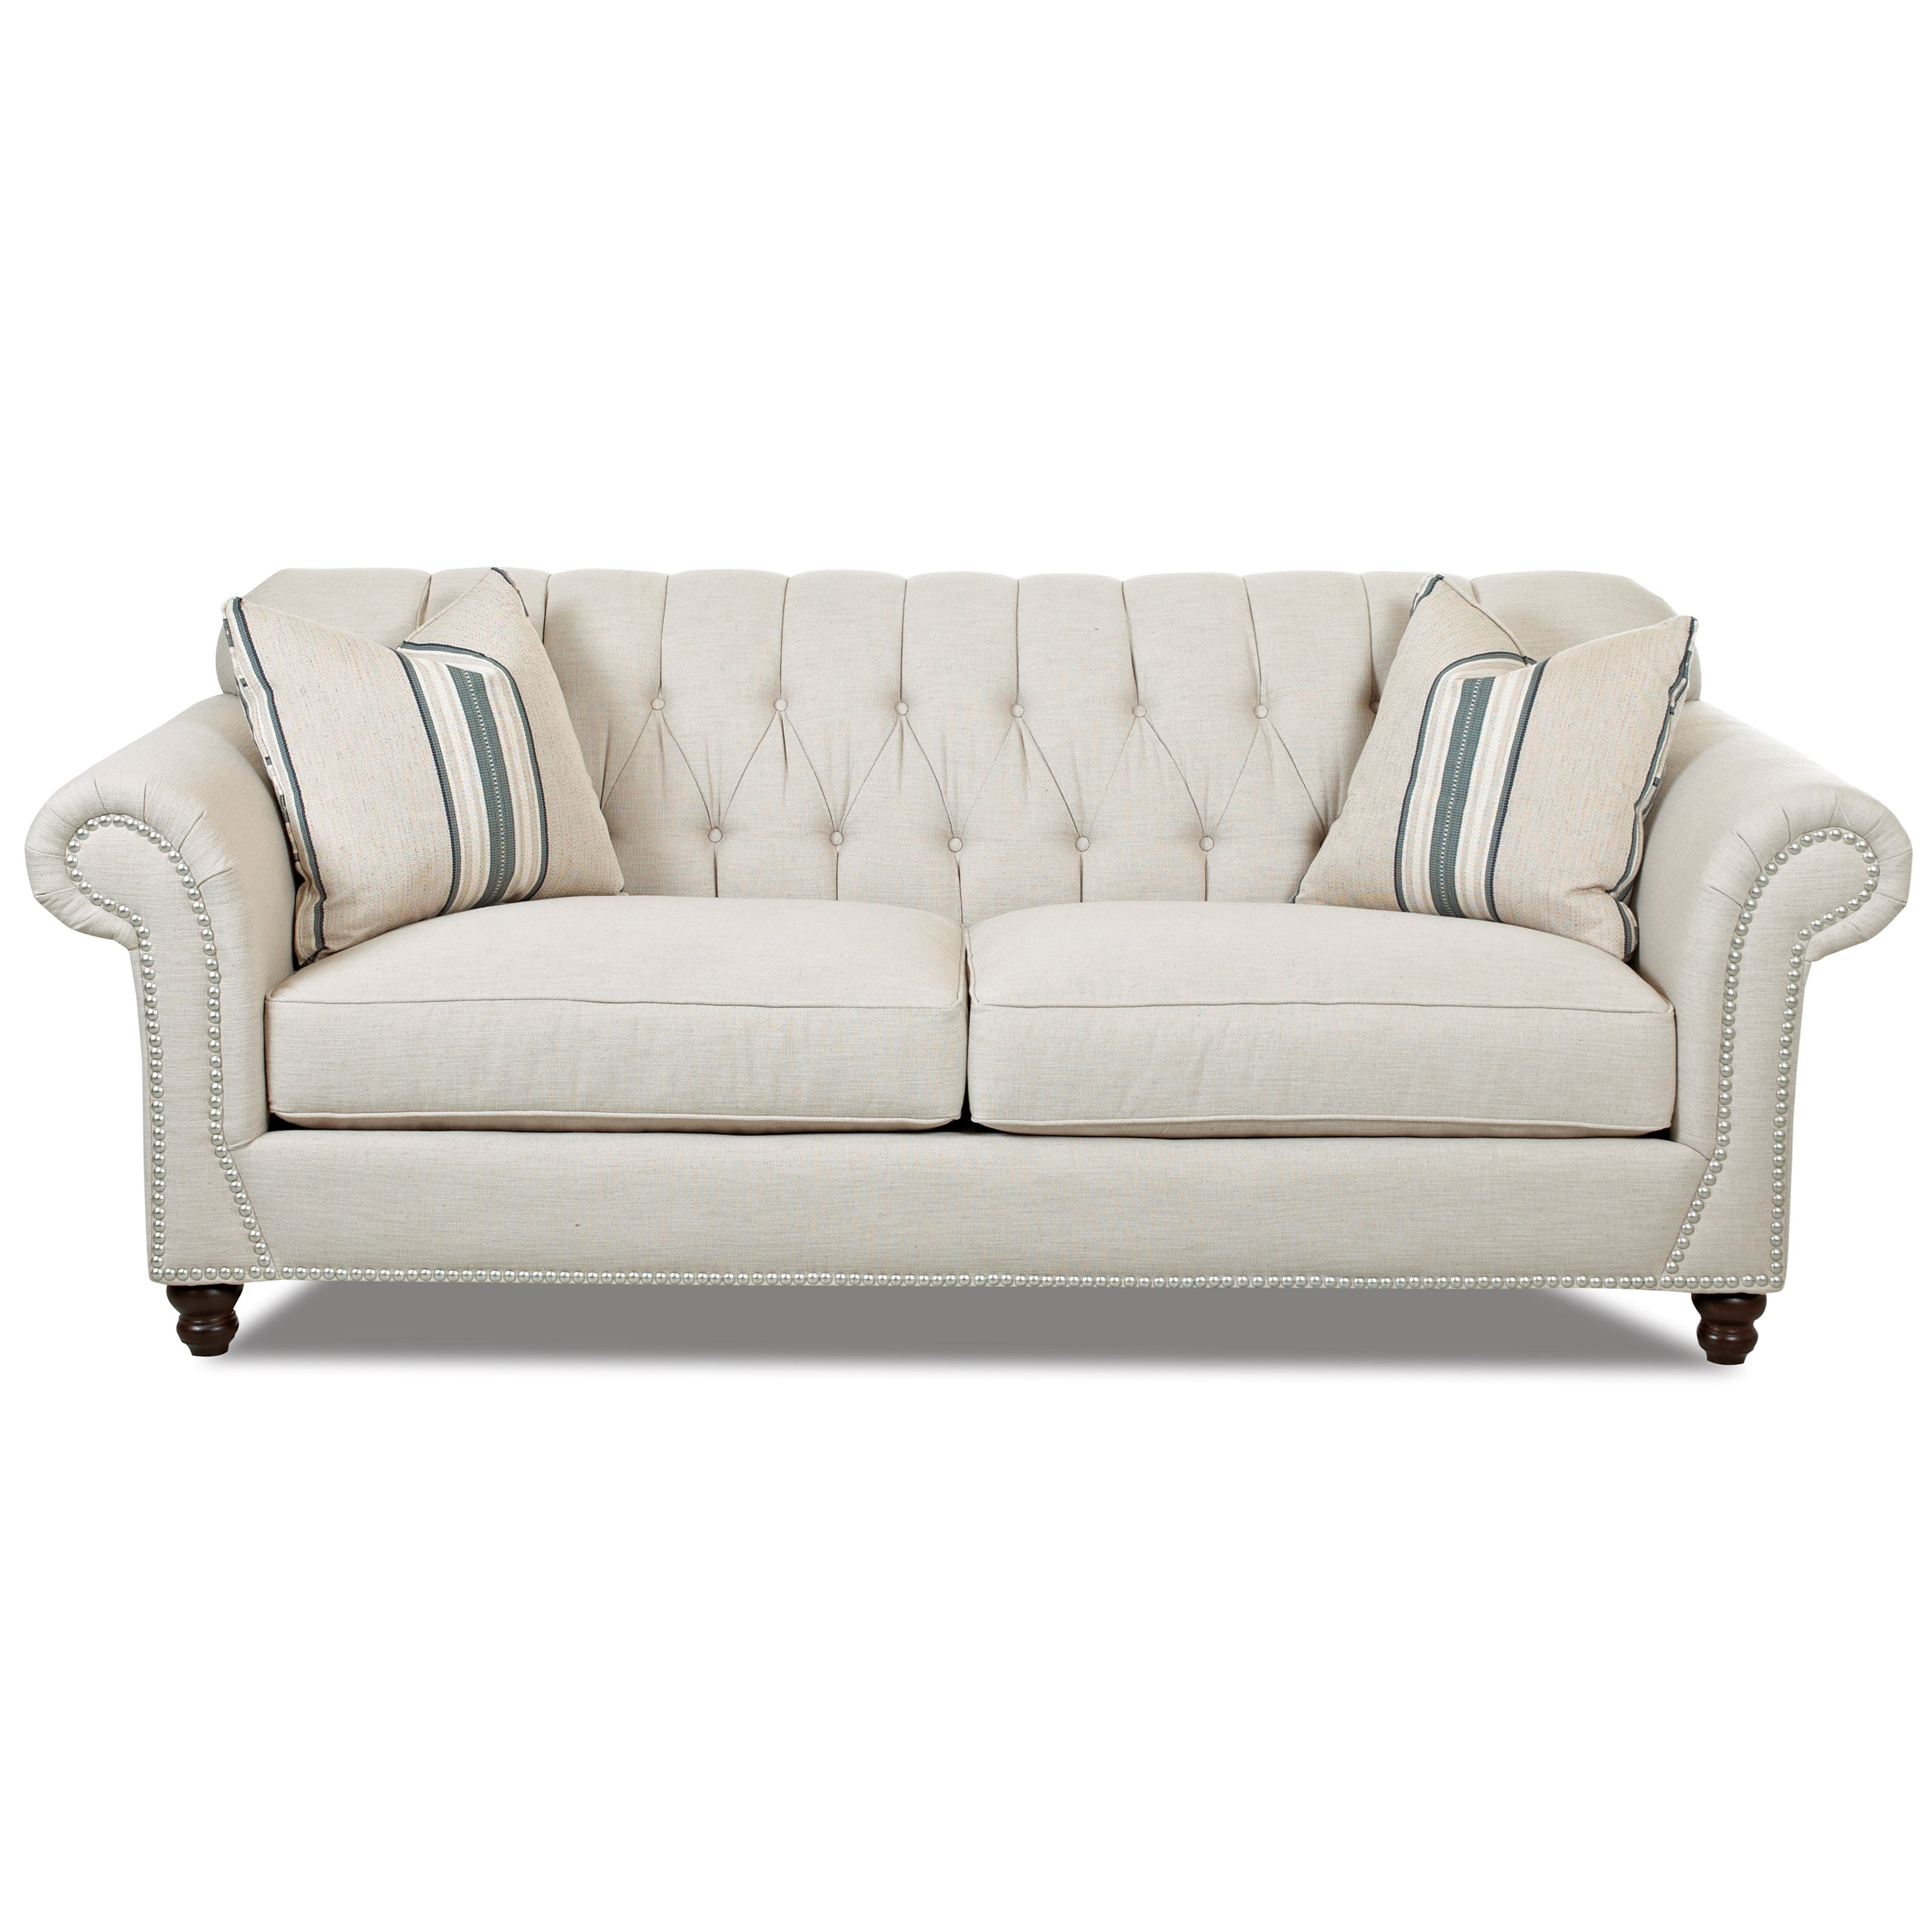 Traditional Sofa With Button Tufted Back, Rolled Arms And